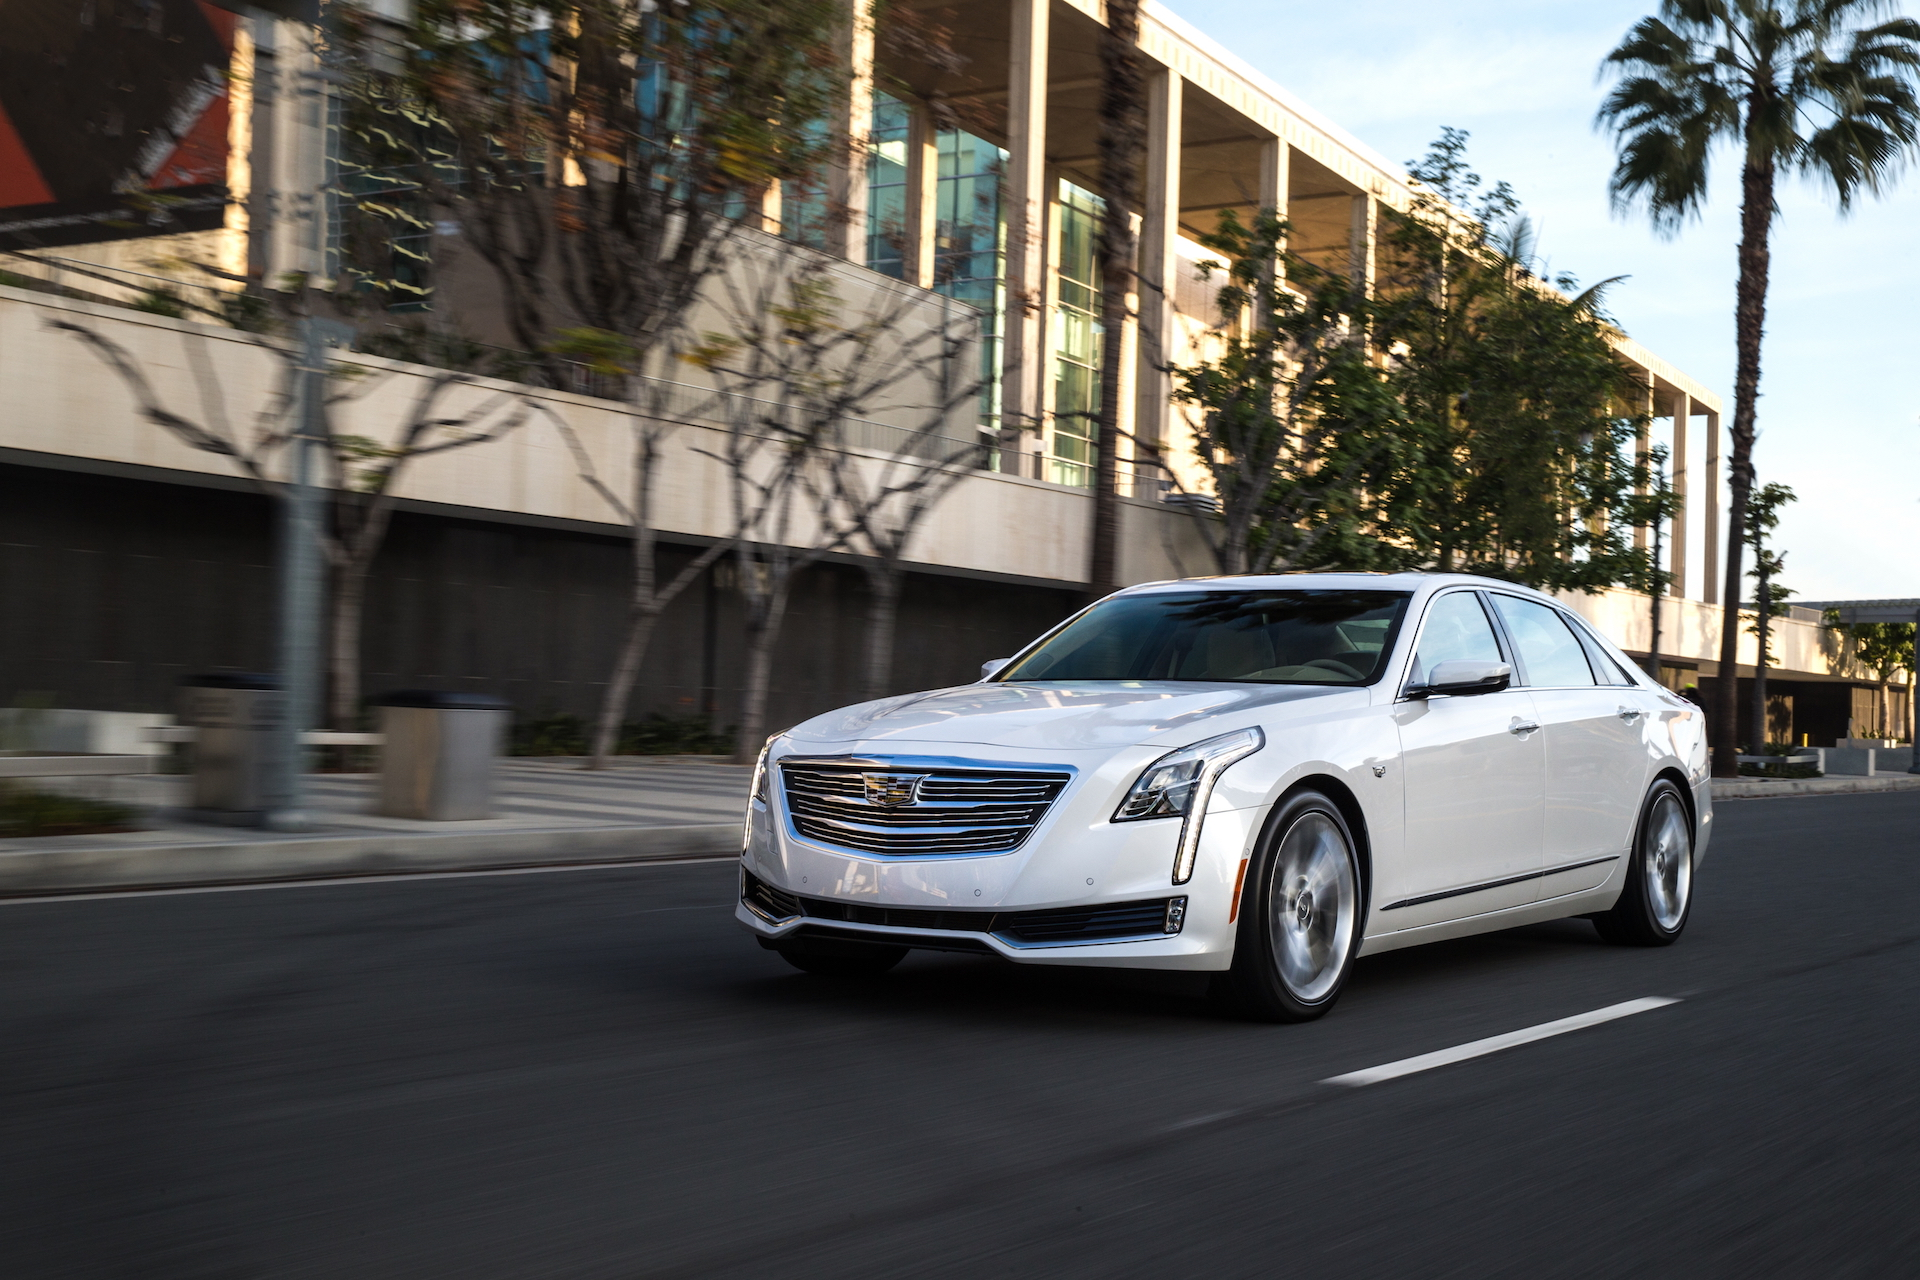 2017 cadillac ct6 review ratings specs prices and photos the car connection. Black Bedroom Furniture Sets. Home Design Ideas